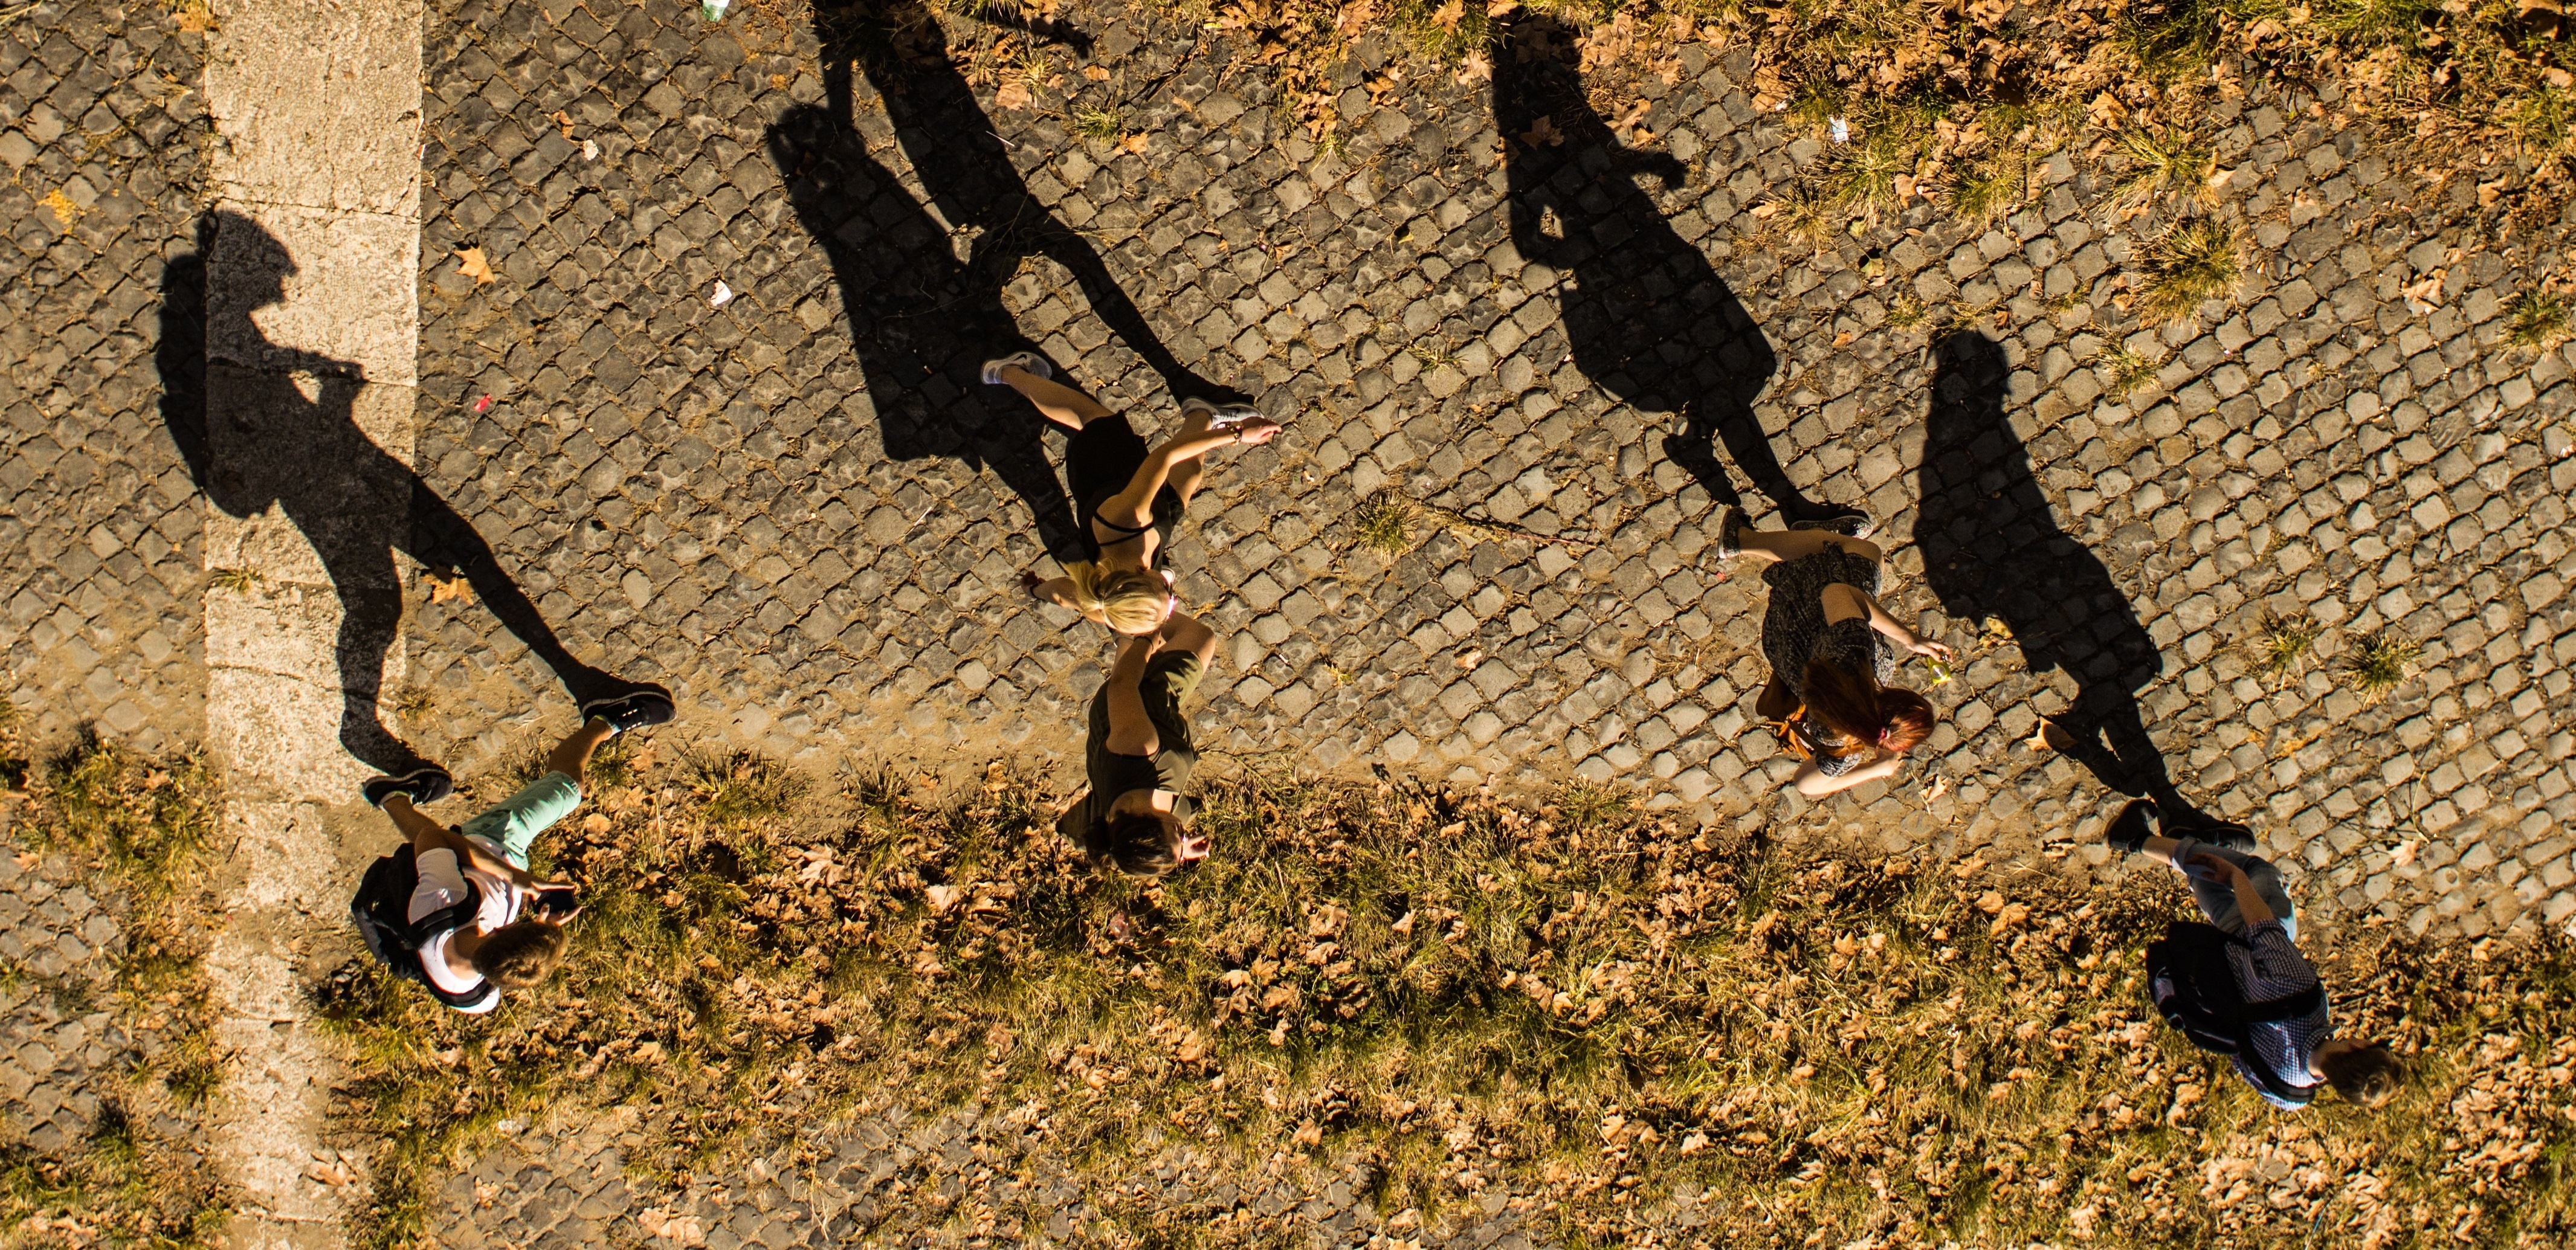 People walking on grassy path with shadows